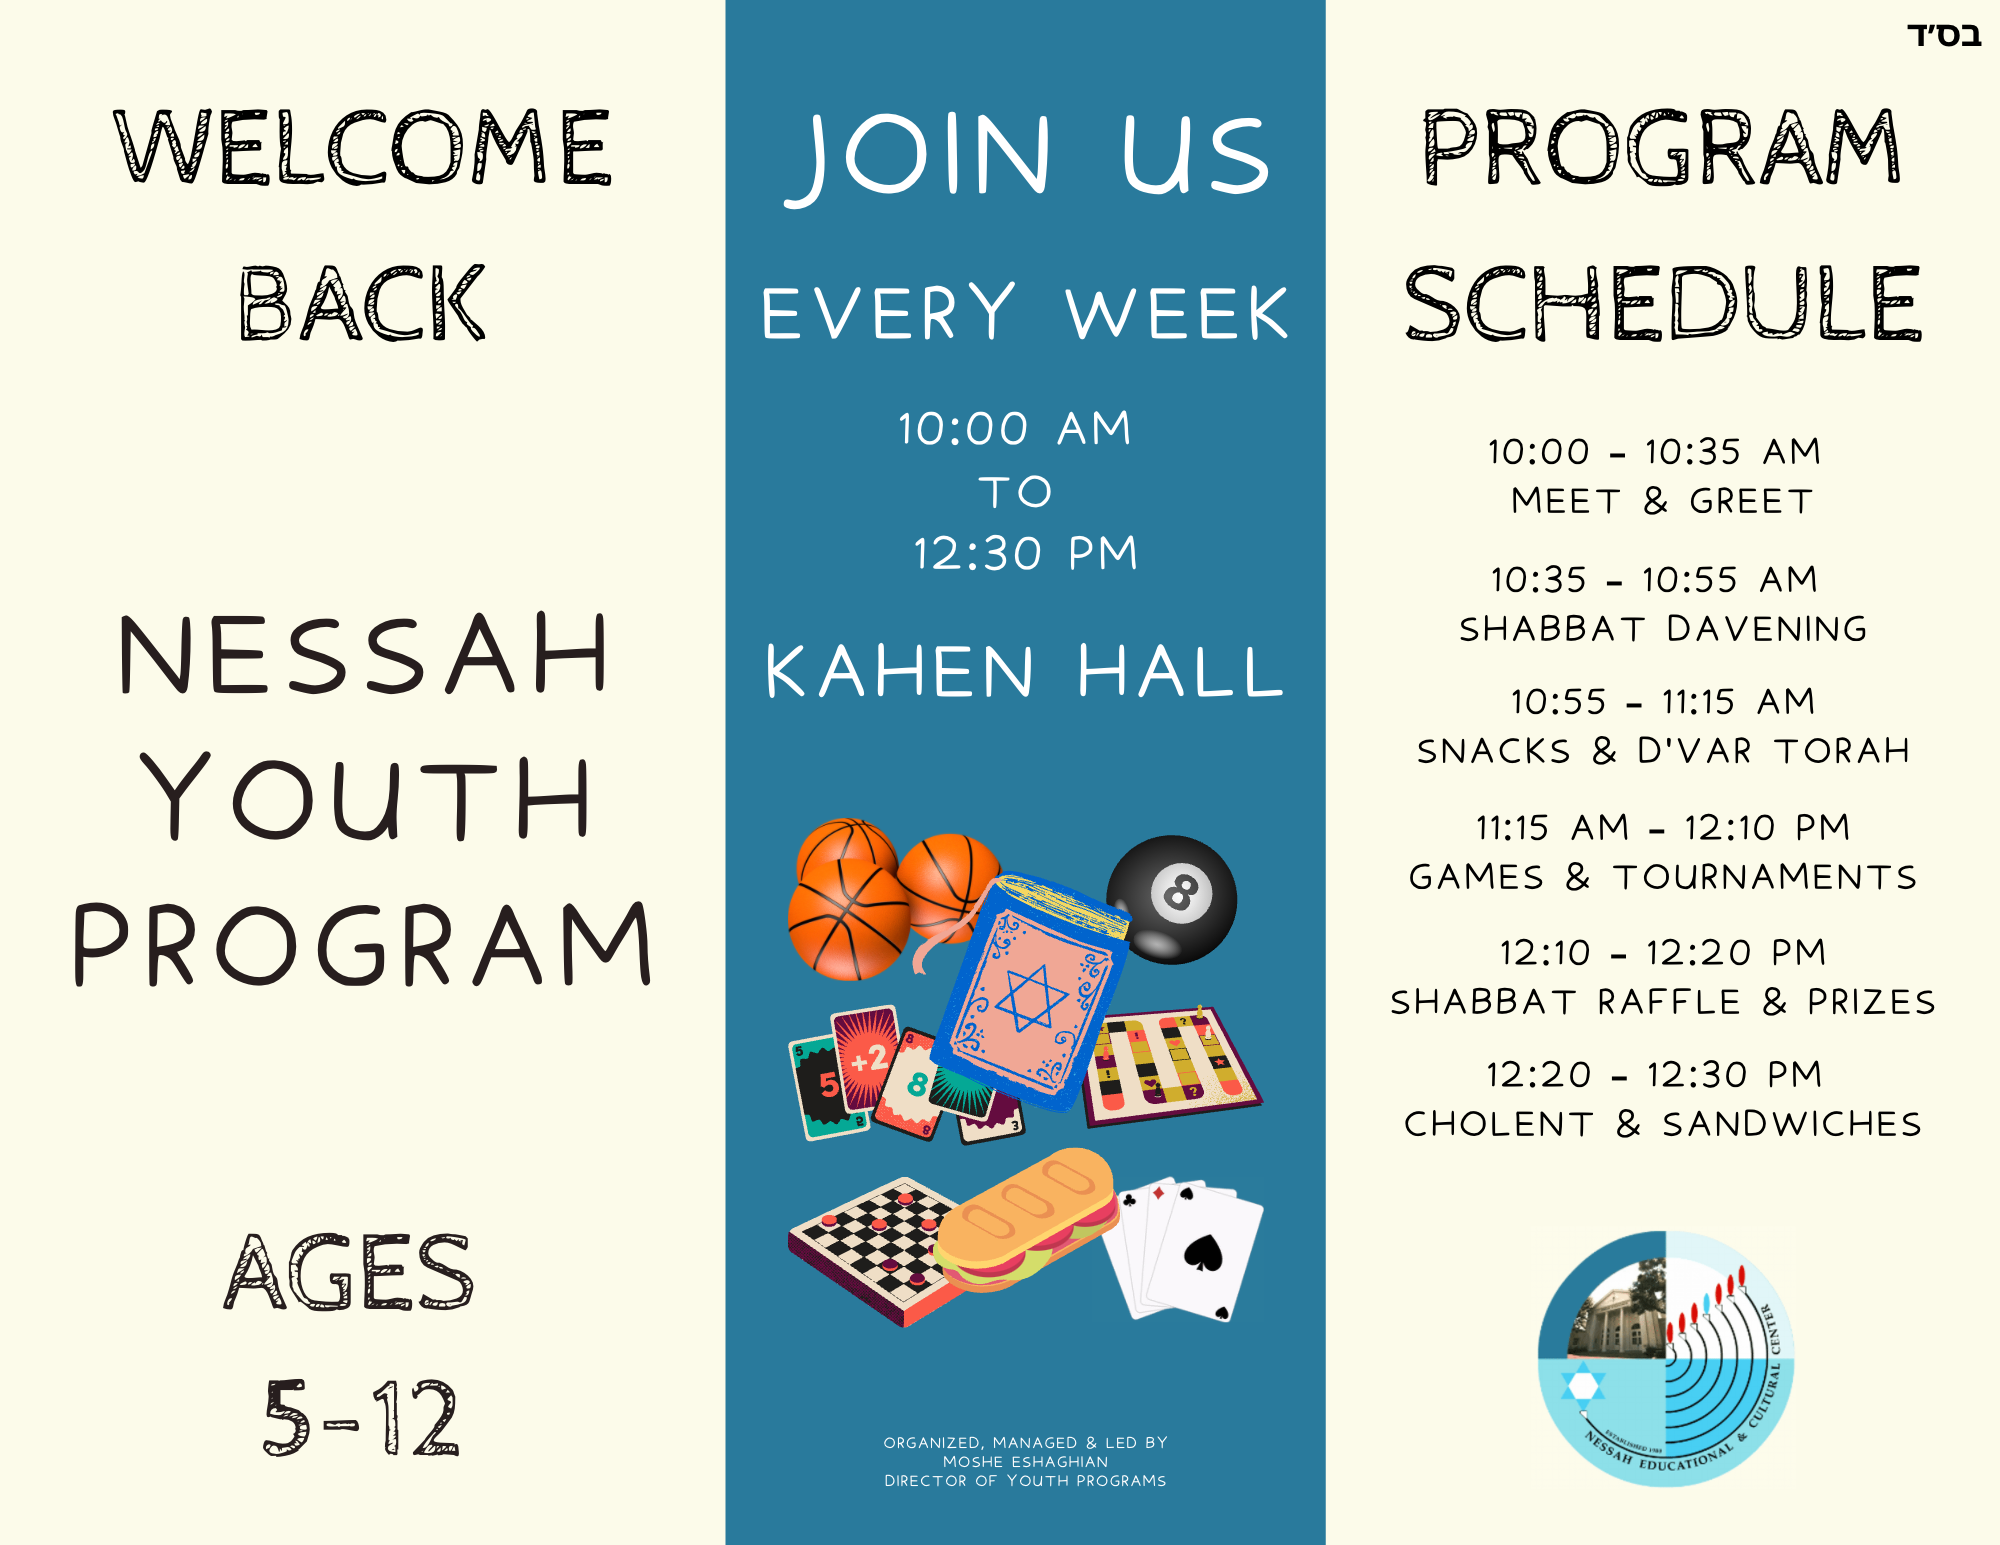 """<a href=""""https://images.shulcloud.com/766/uploads/NIT/NessahYouthProgram.png""""                                     target="""""""">                                                                 <span class=""""slider_title"""">                                     Welcome Back Youth Program Ages 5-12                                </span>                                                                 </a>                                                                                                                                                                                      <a href=""""https://images.shulcloud.com/766/uploads/NIT/NessahYouthProgram.png"""" class=""""slider_link""""                             target="""""""">                             Program Schedule                            </a>"""